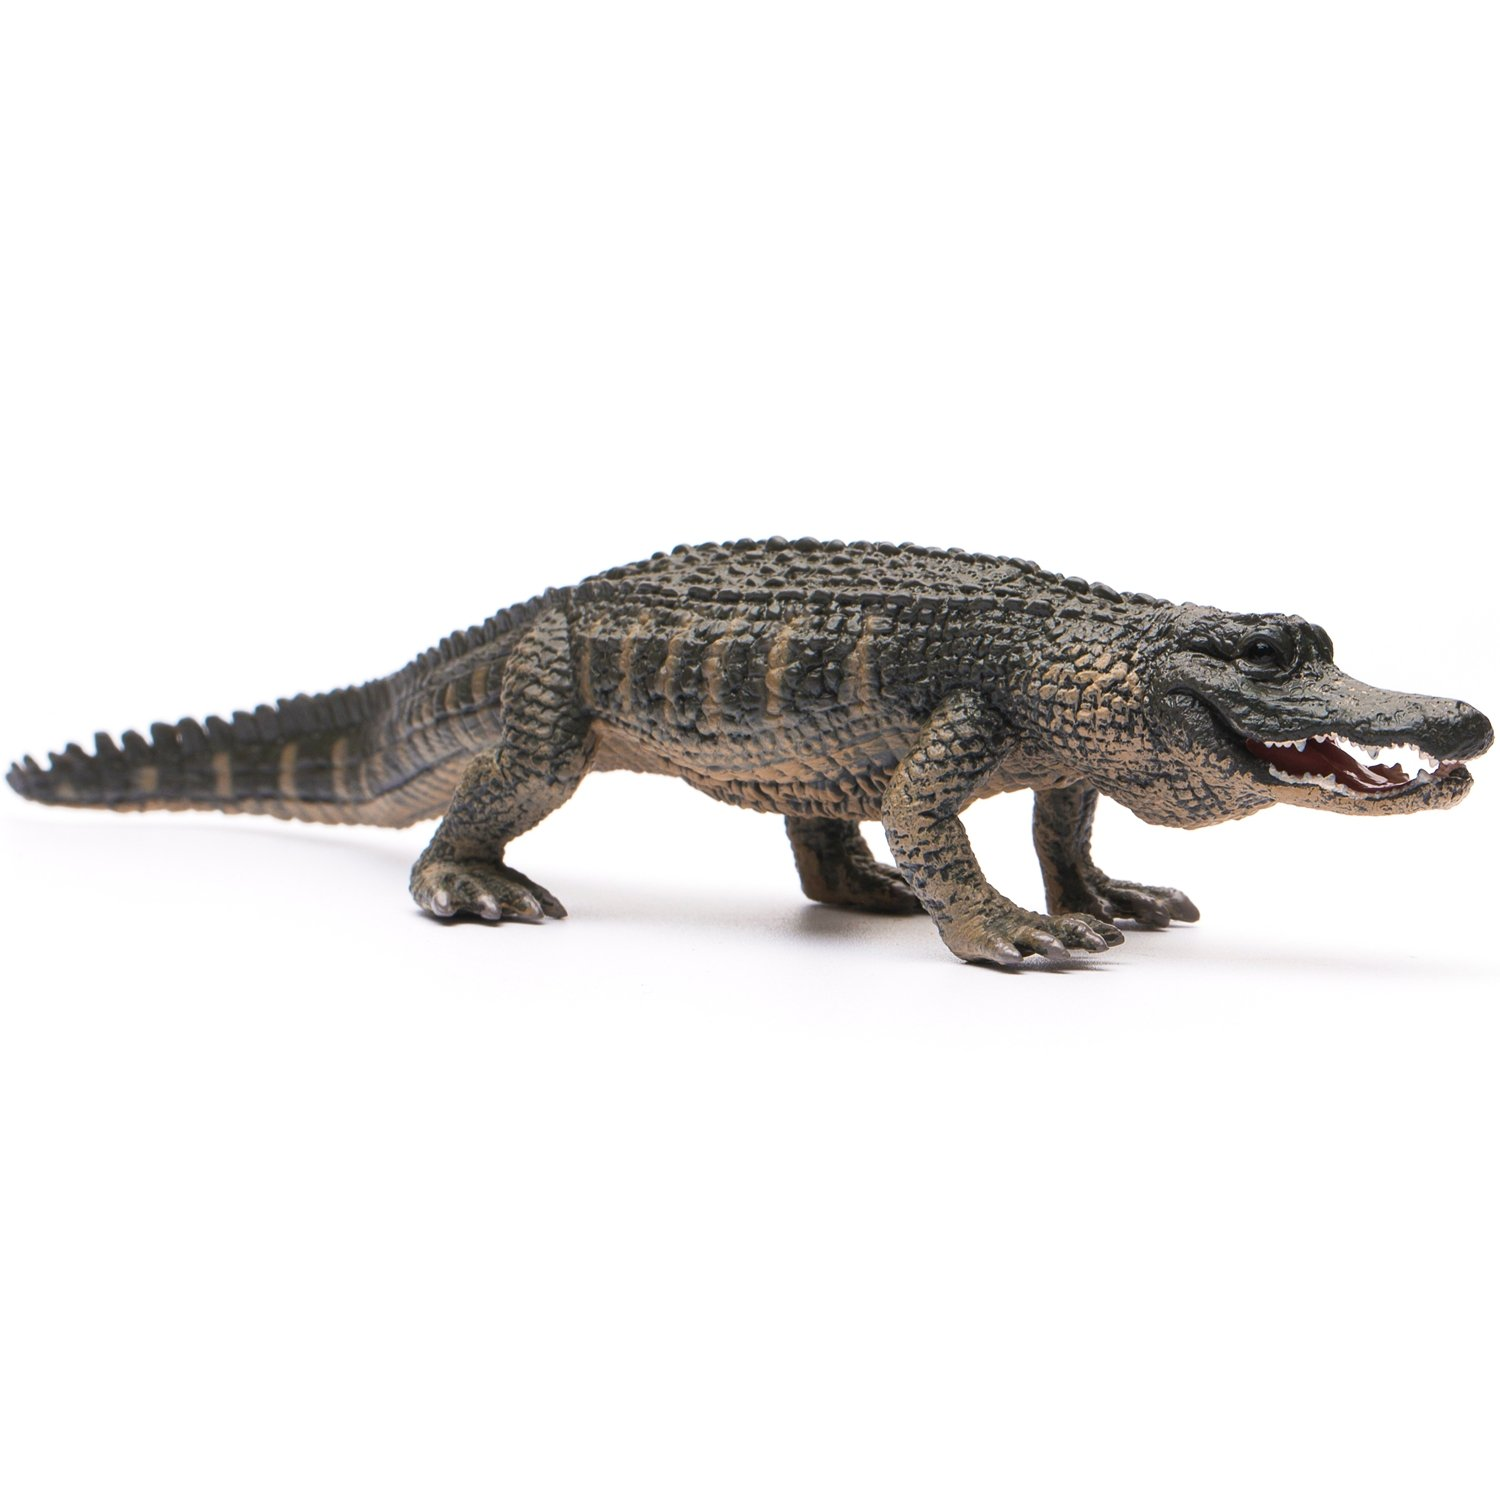 CollectA Wildlife American Alligator Toy Figure Authentic Hand Painted Reptile Model